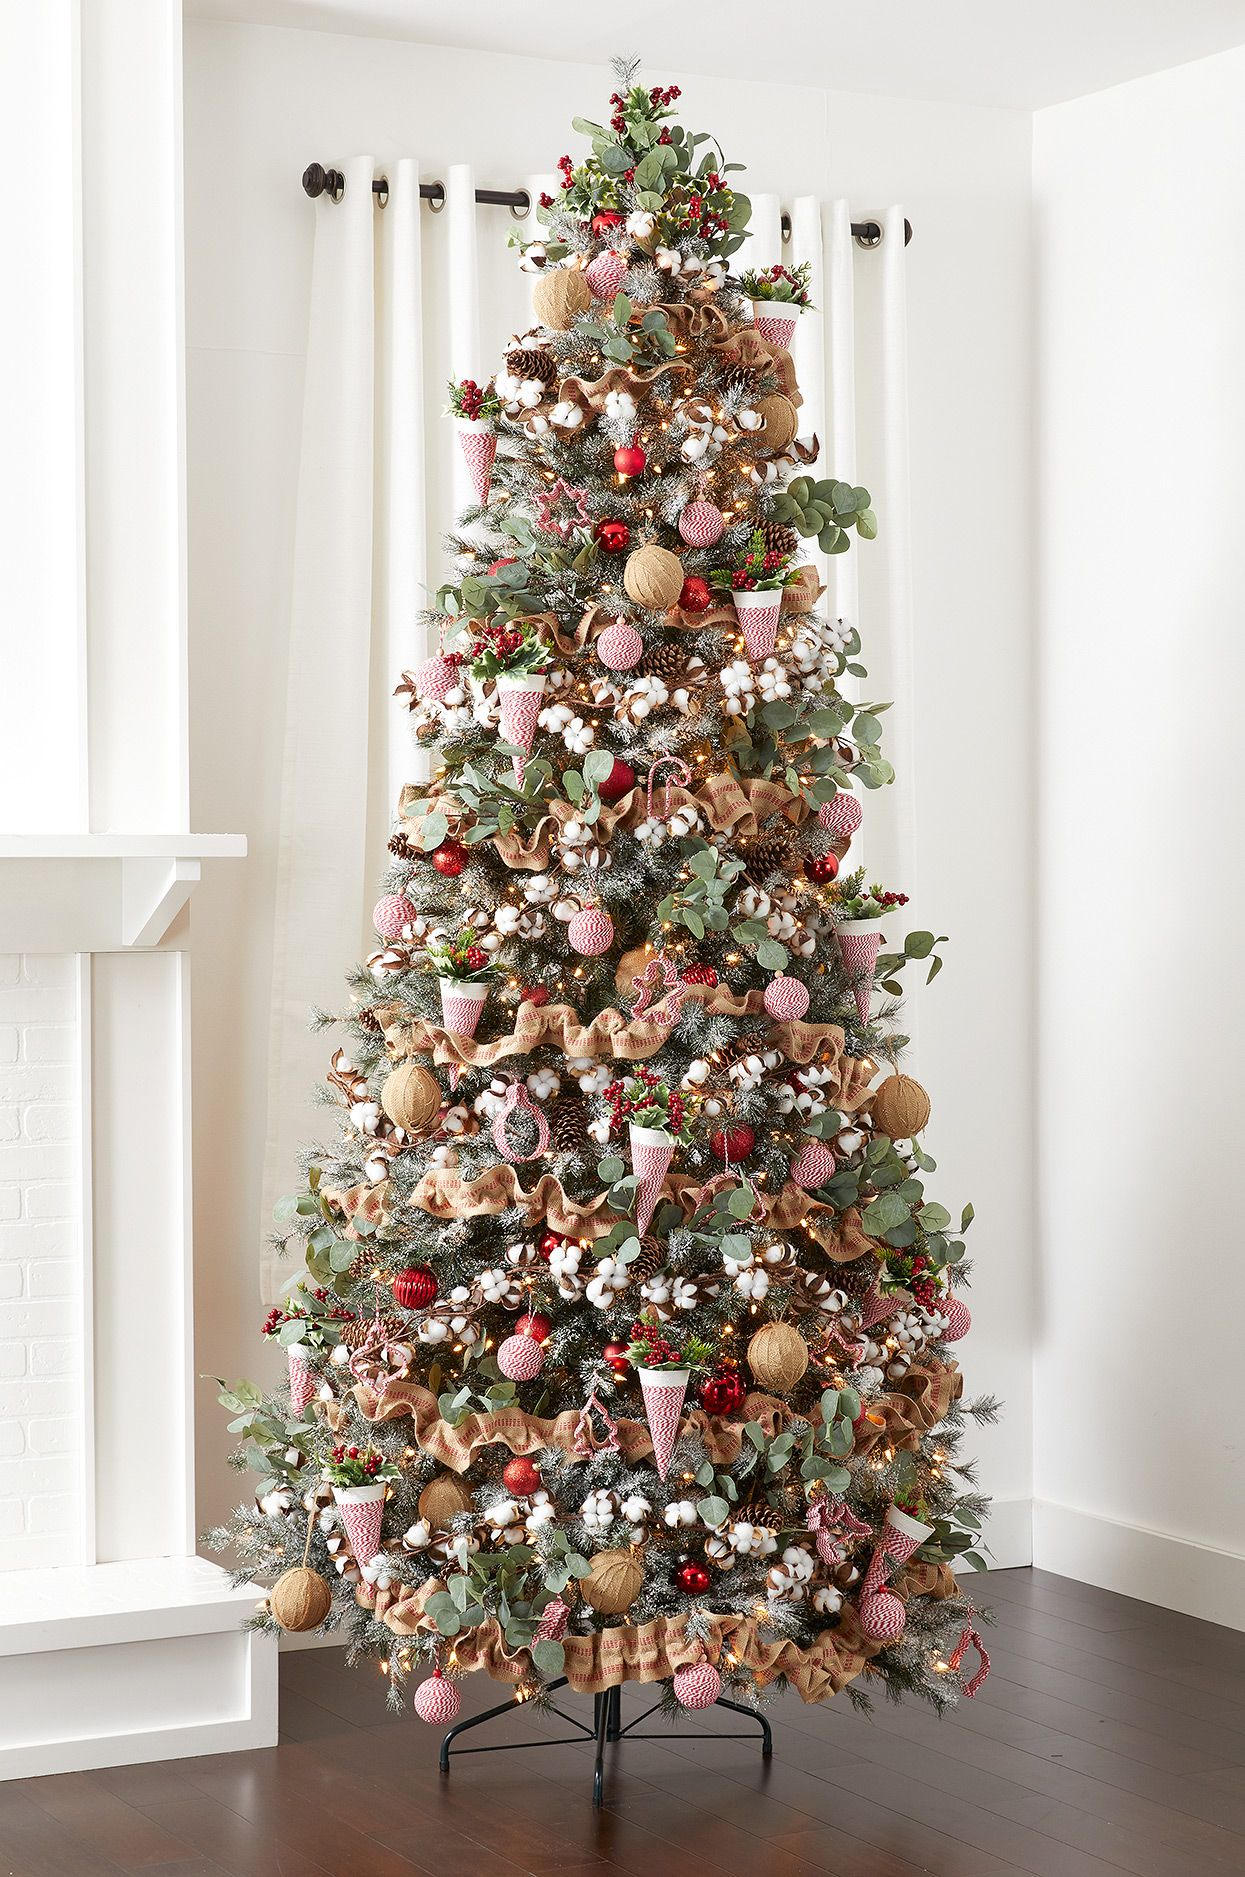 34 Stunning Christmas Trees Decorated For The Holiday Season Elegant Christmas Trees Christmas Tree Inspiration Cool Christmas Trees